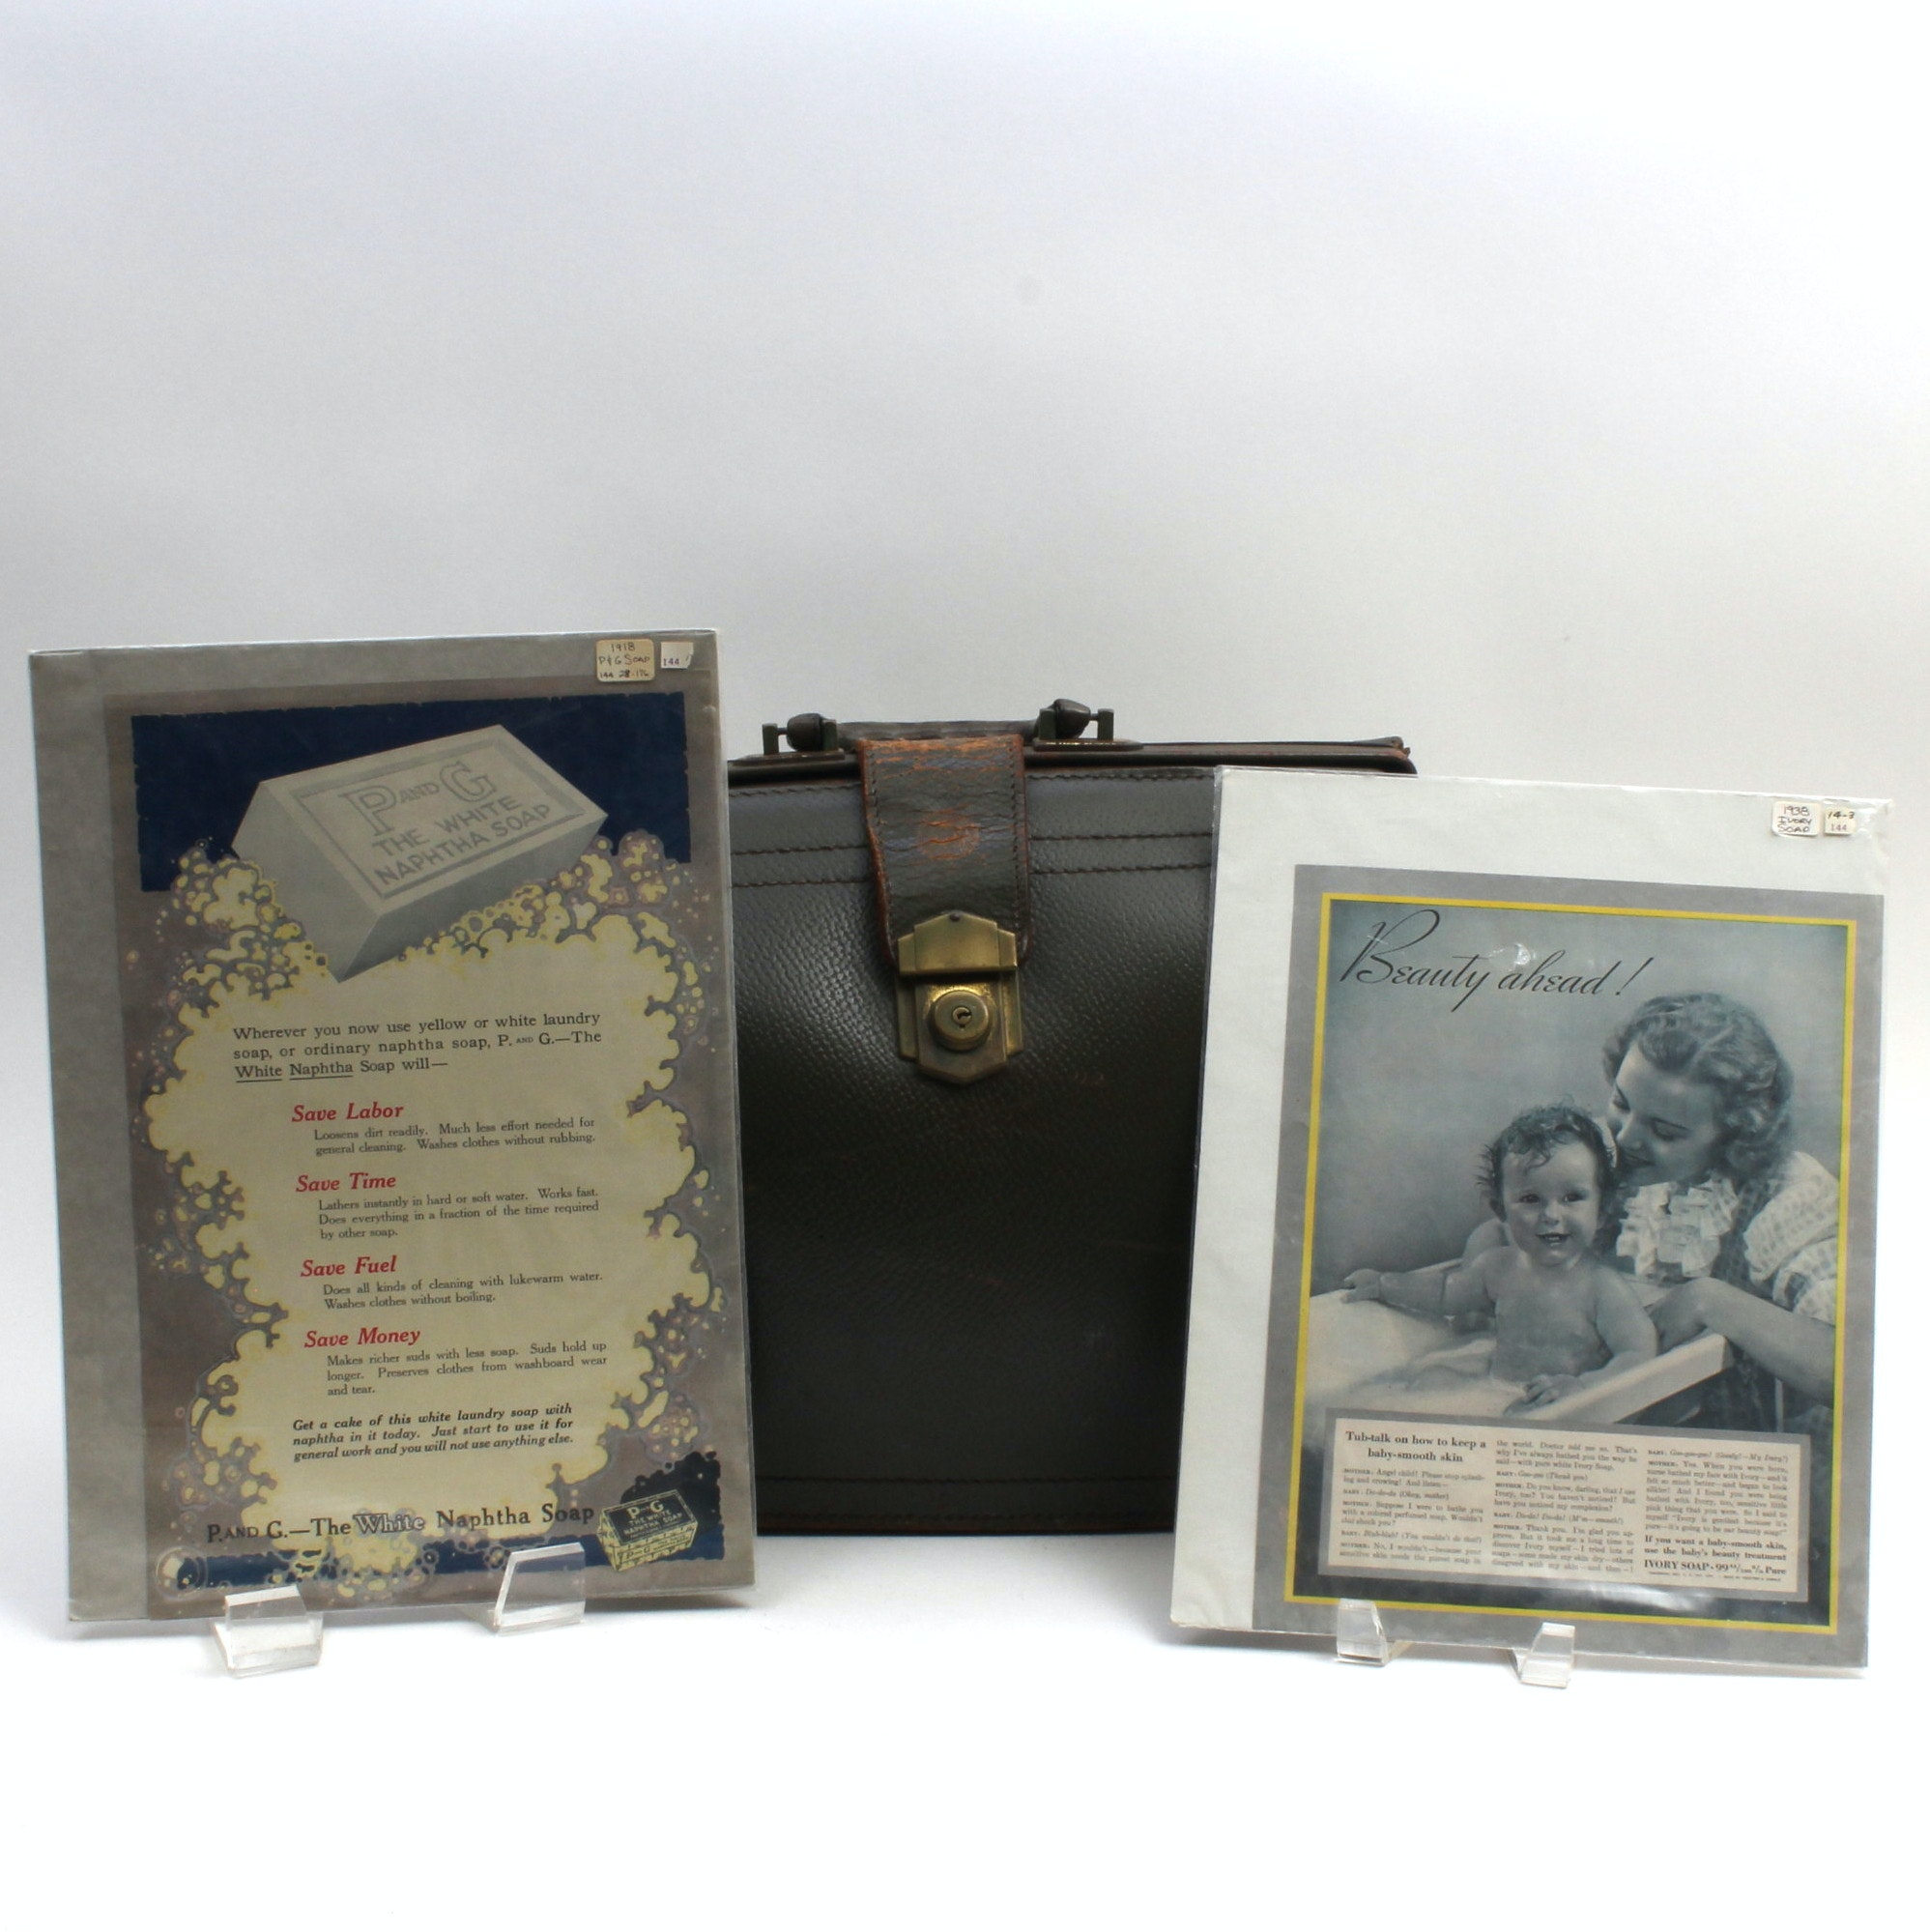 Vintage Procter and Gamble Attache Case and Soap Ads